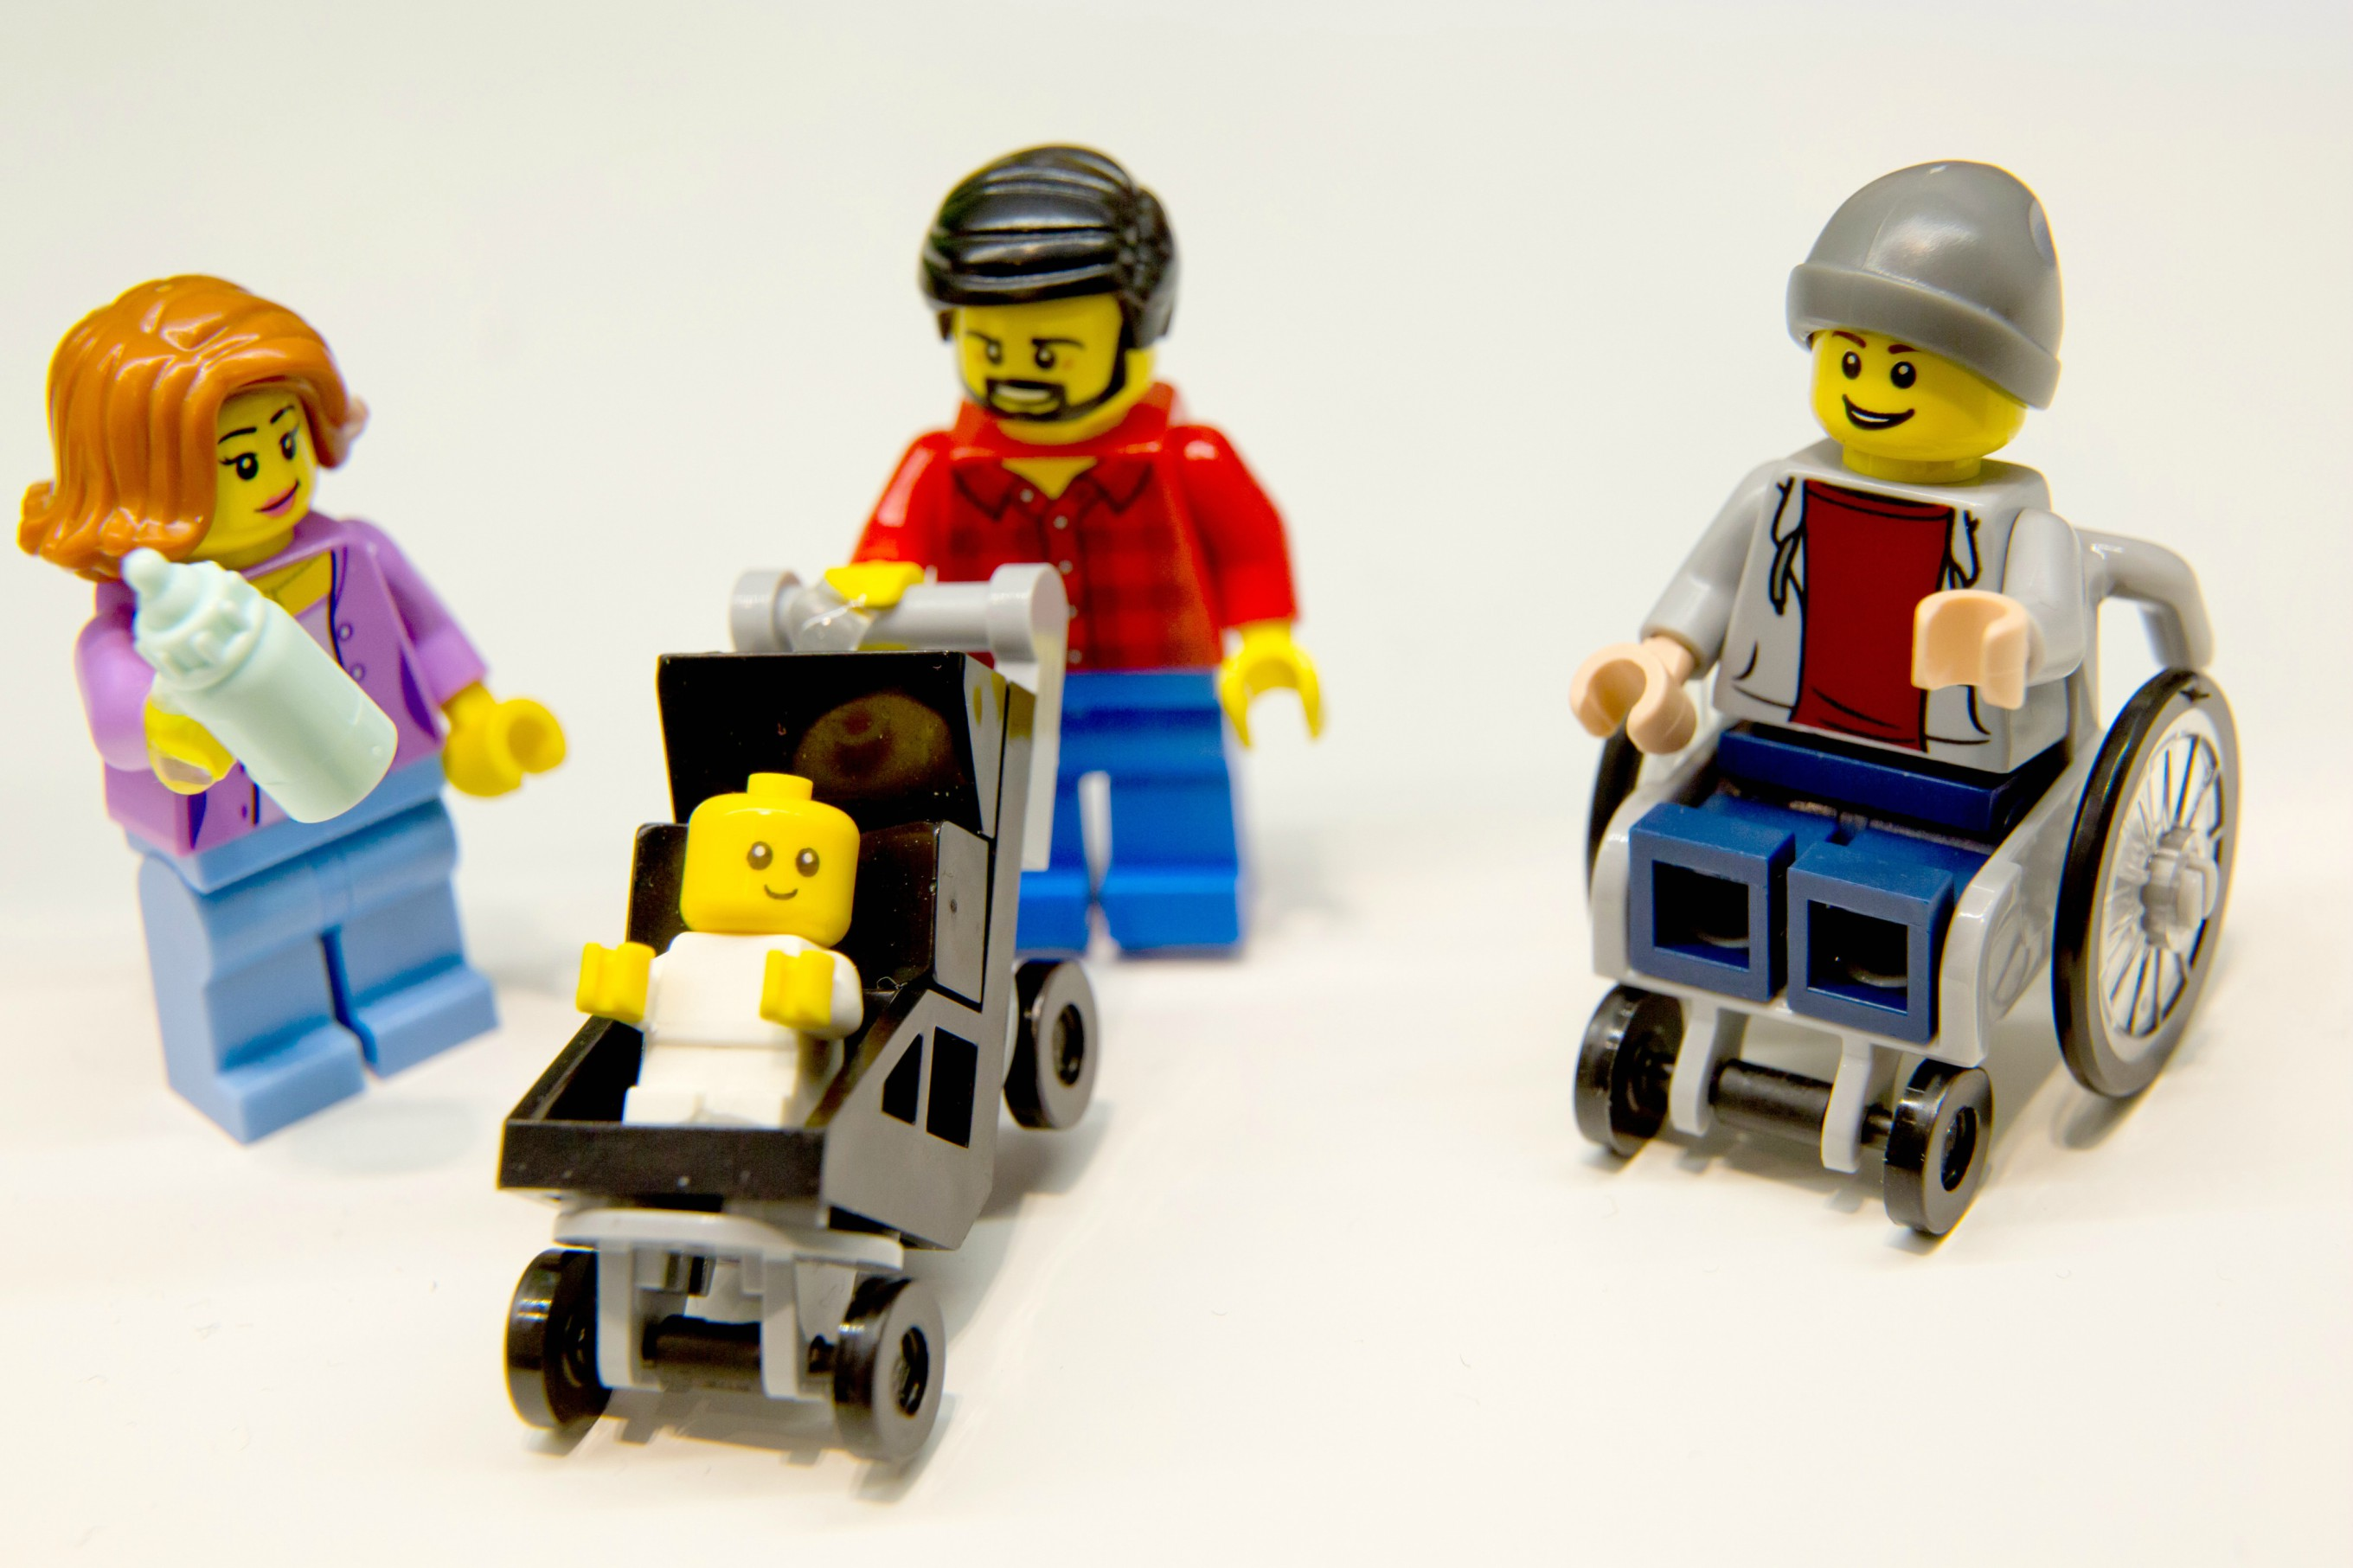 Lego Unveils First Ever Wheelchair Minifigure